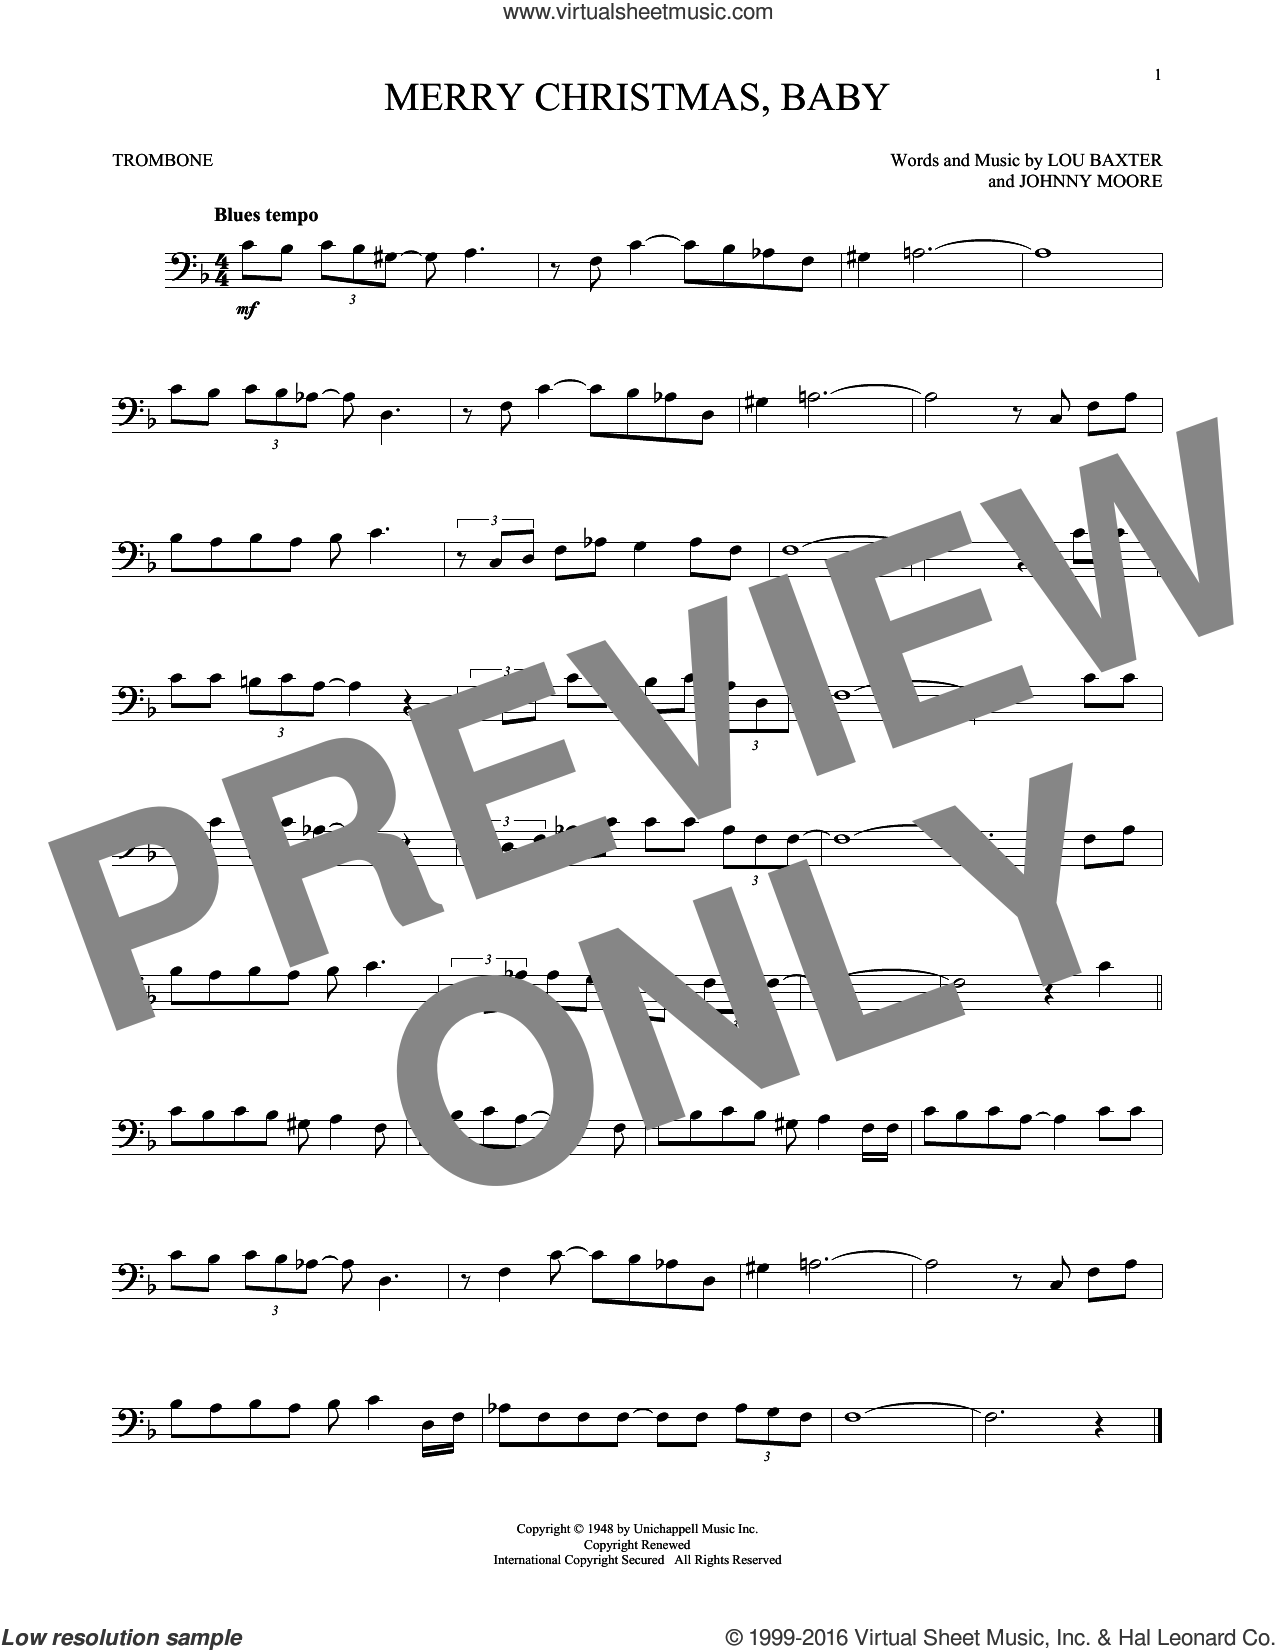 Merry Christmas, Baby sheet music for trombone solo by Elvis Presley, Johnny Moore and Lou Baxter, intermediate skill level